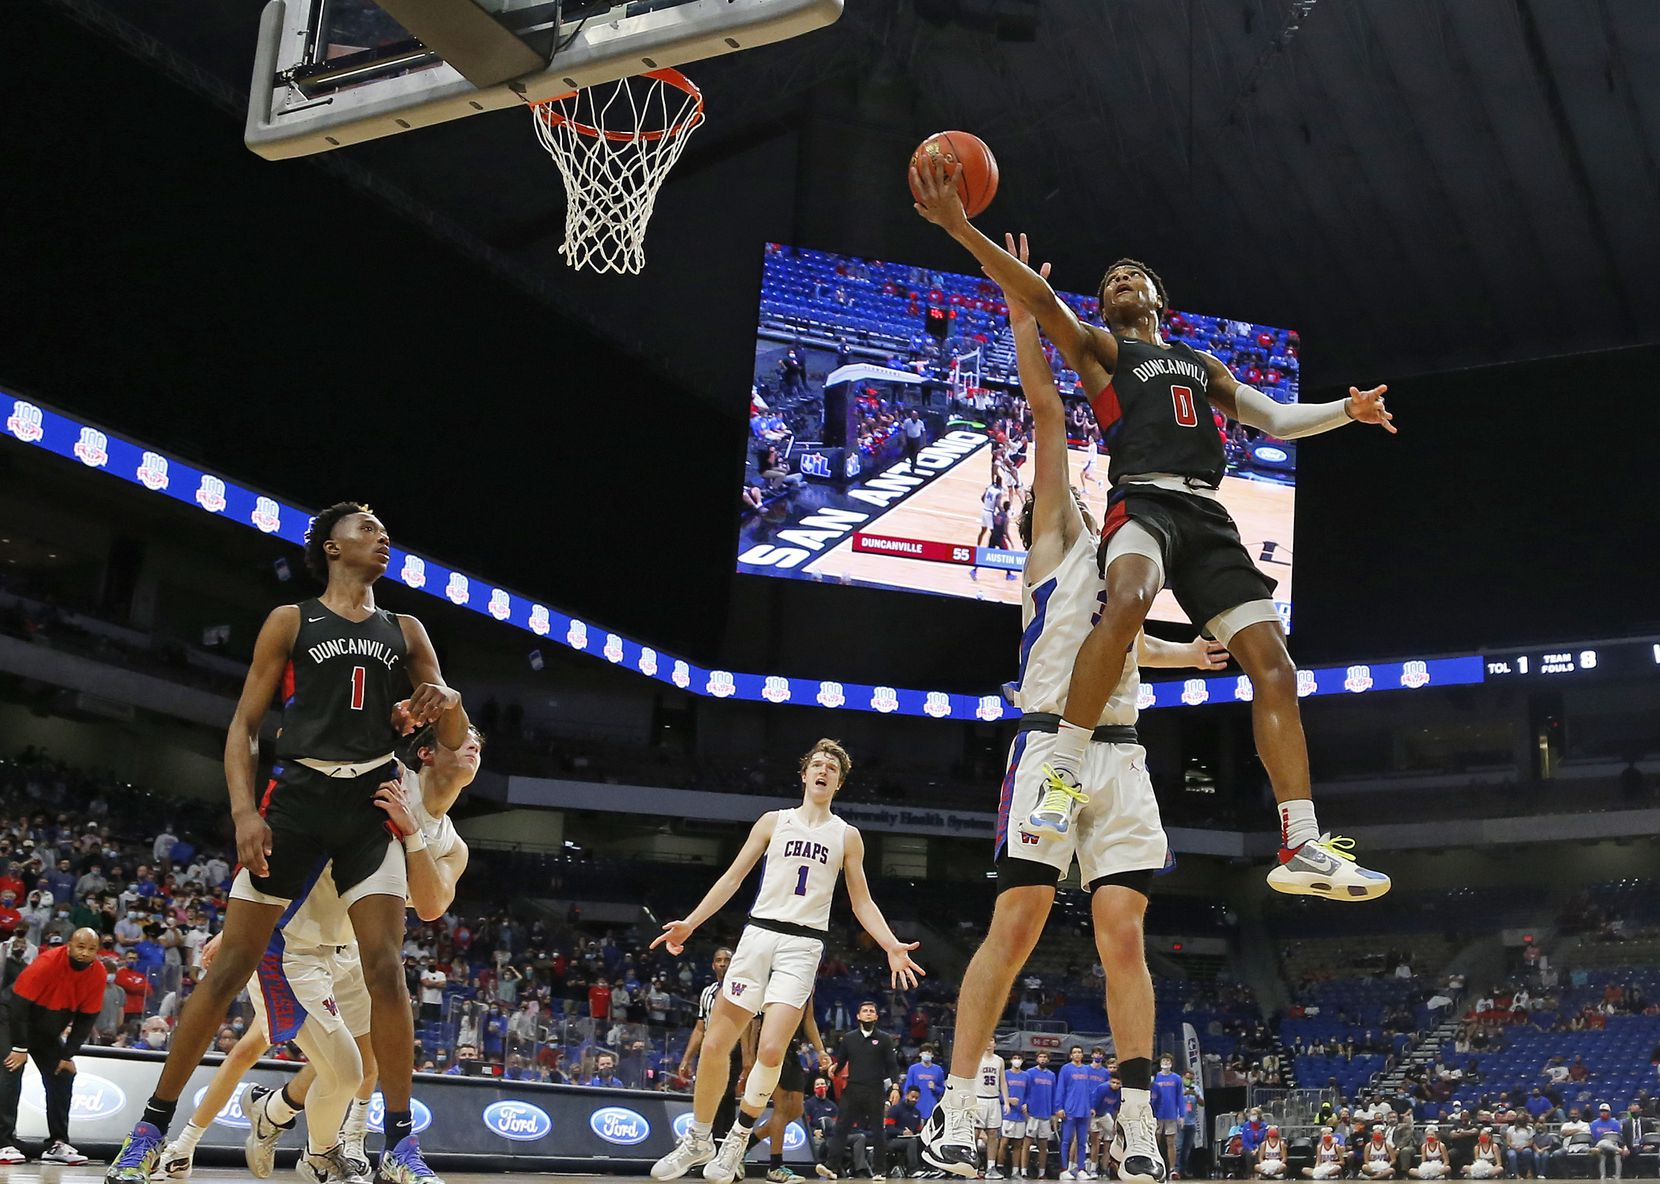 Duncanville Zhuric Phelps #0 drives for two late in fourth quarter. UIL boys Class 6A basketball state championship game between Duncanville and Austin Westlake on Saturday, March 13, 2021 at the Alamodome.